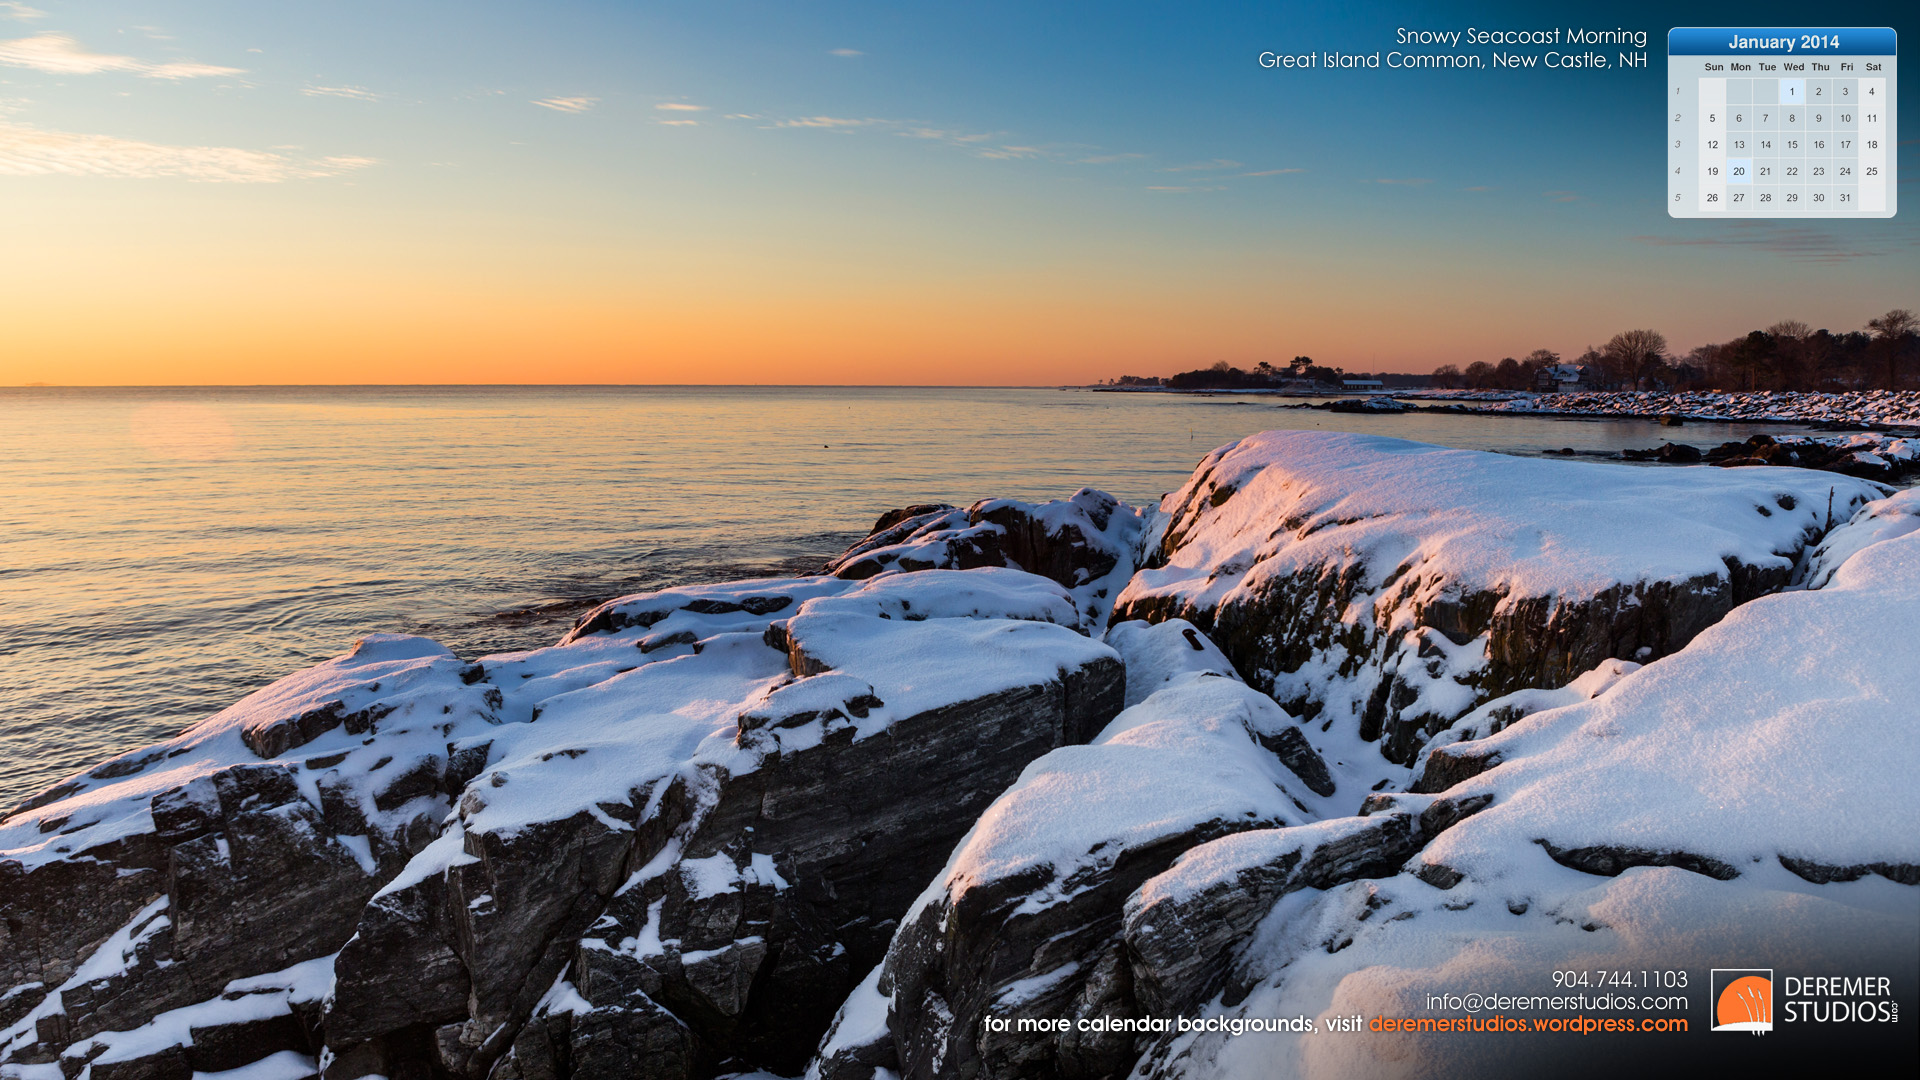 2014 01 January - Snowy Ocean Rocks Great Island Common New Castle